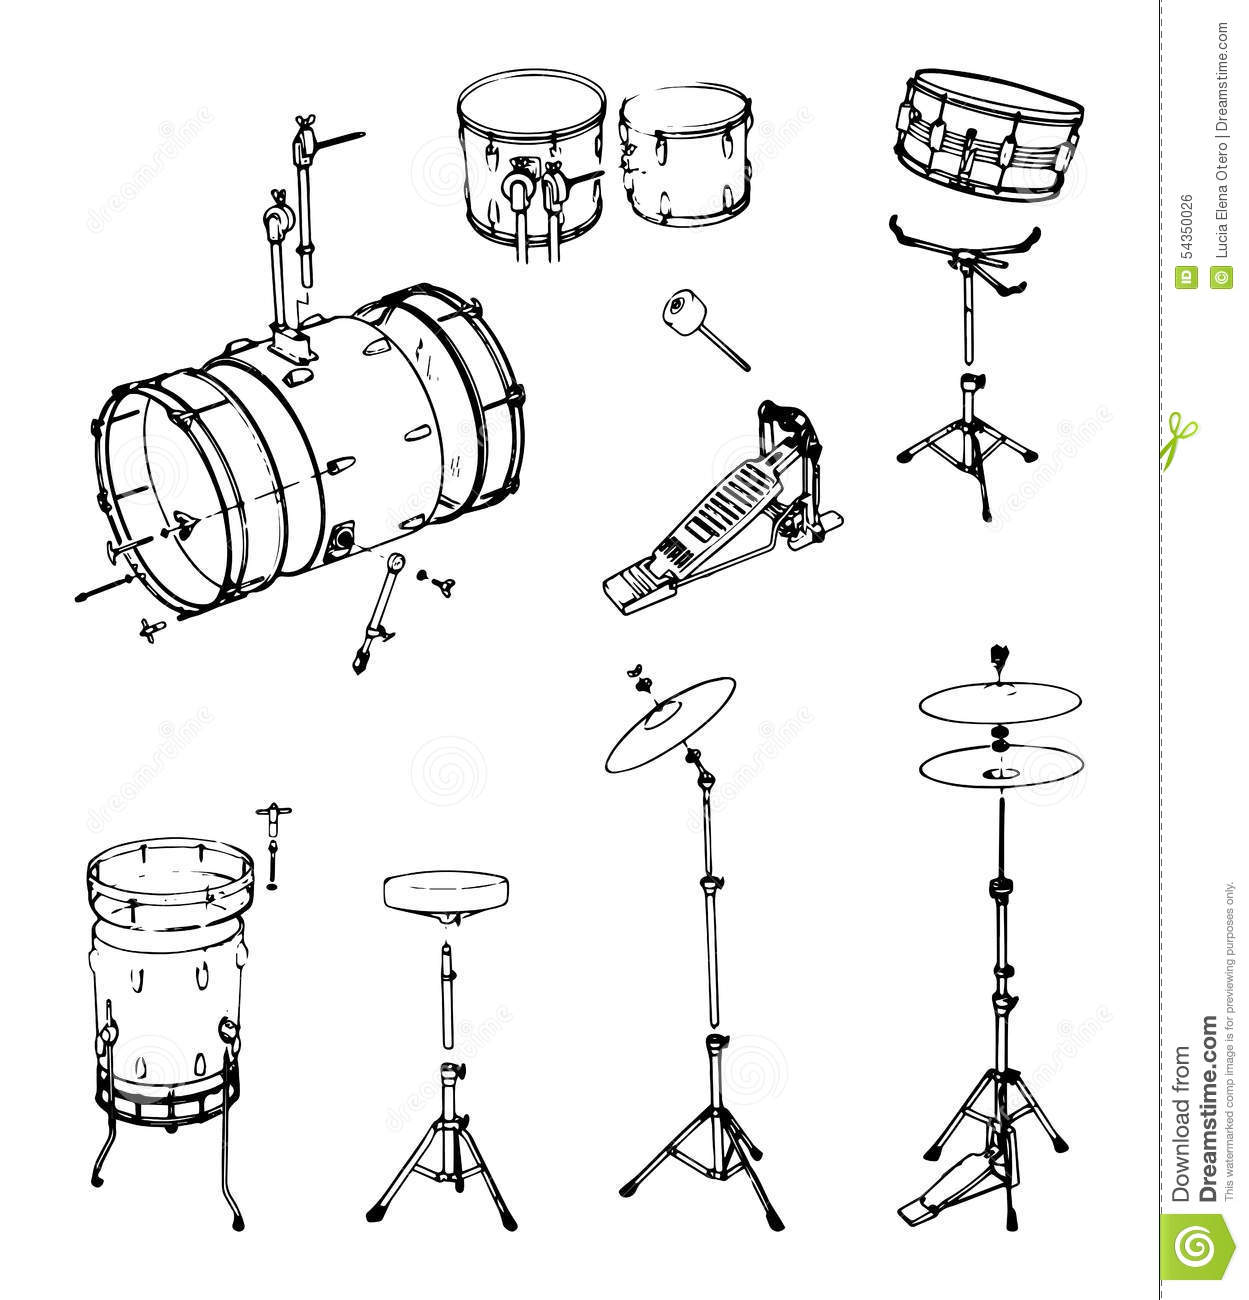 Drum Kit Stock Vector Illustration Of Play Shell Clamp